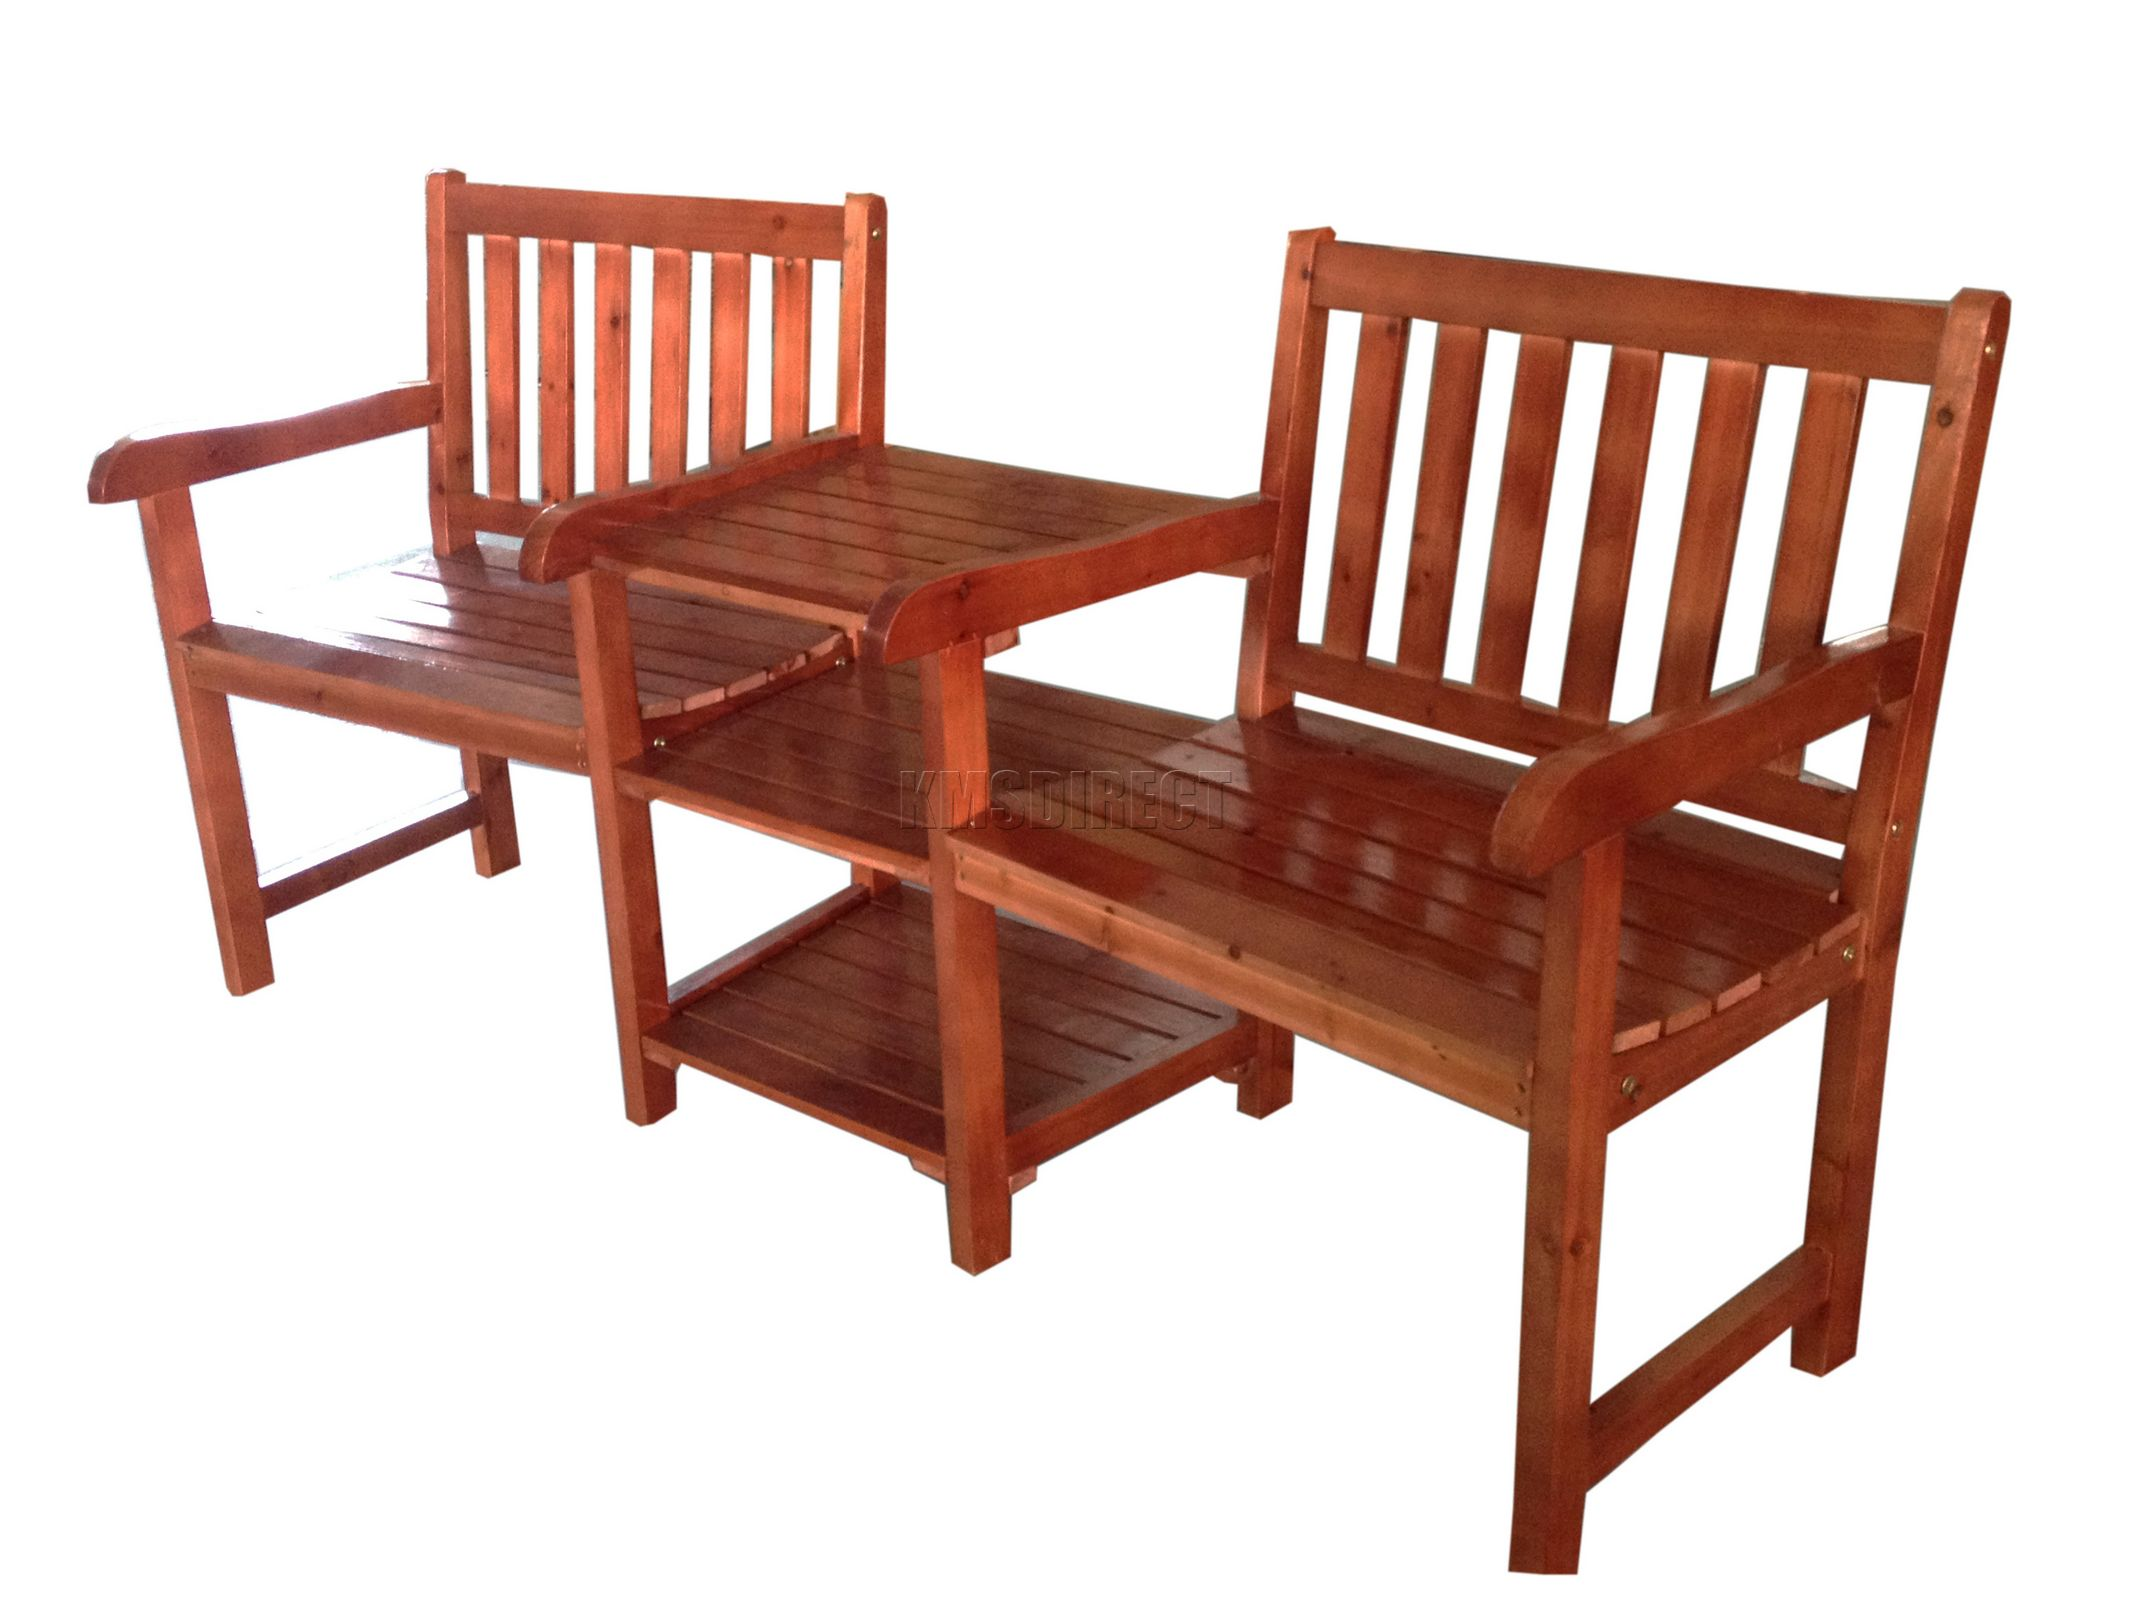 Outdoor Furniture Garden Patio 2 Seater Wooden Companion Bench Chair Table Tawny Ebay